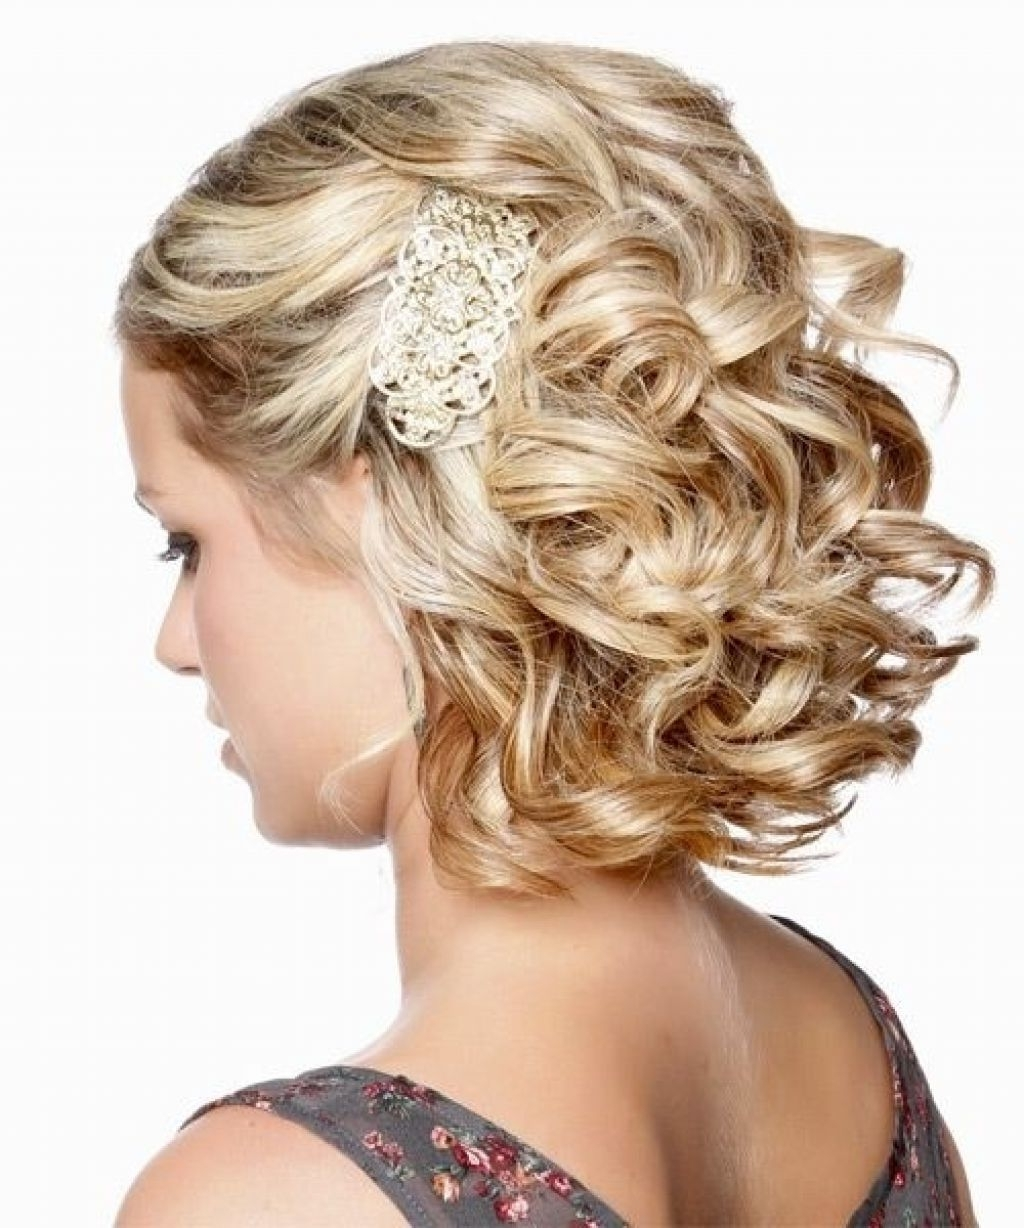 Weddinghair #weddinghairstyle #bohobride #bridalhair #hairstyle Pertaining To Curly Updos For Medium Hair (View 15 of 15)